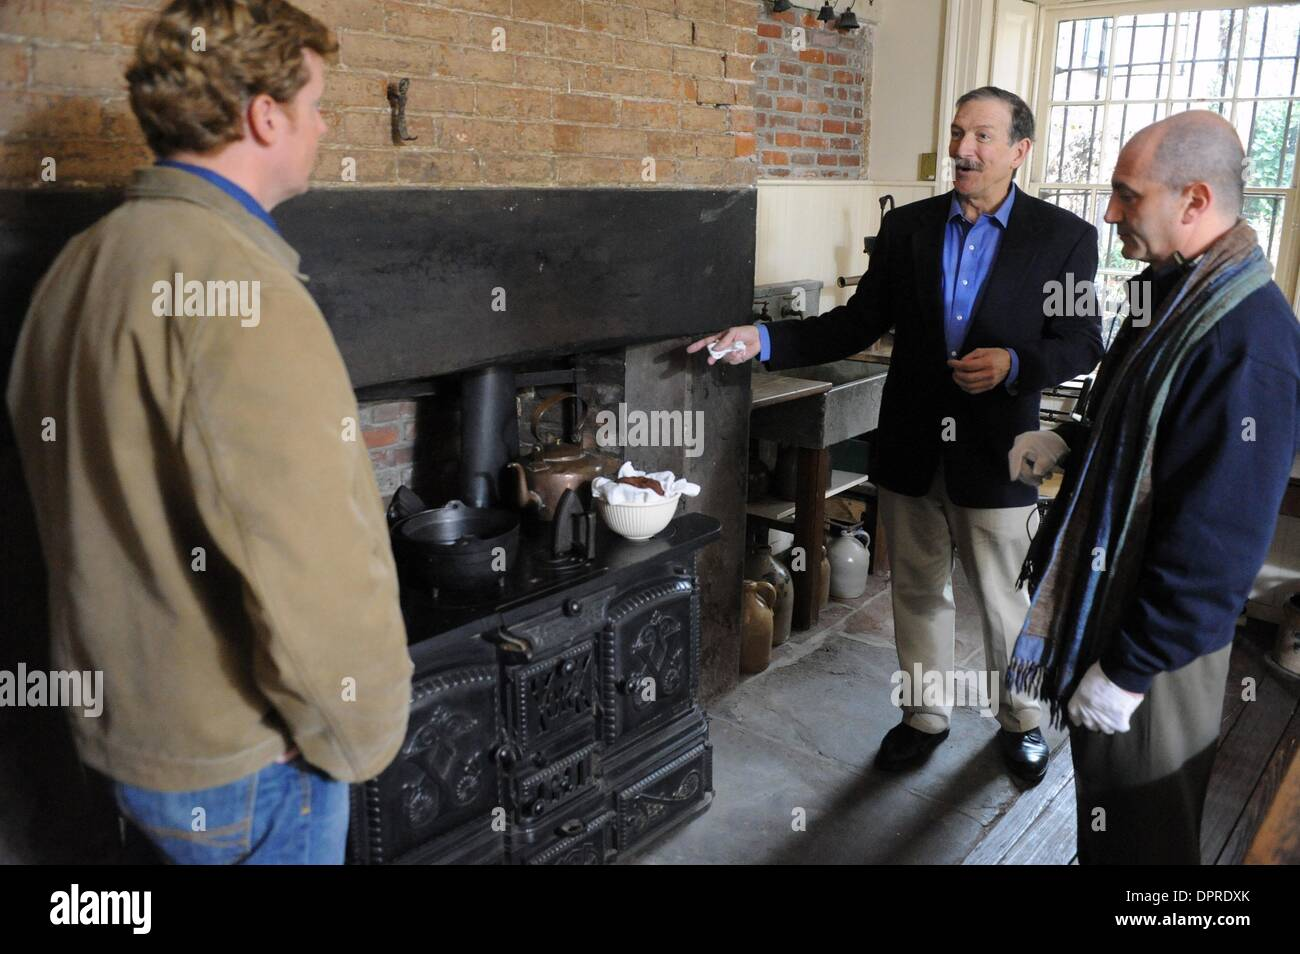 Dec 04, 2008 - Manhattan, New York, USA - KEVIN O'CONNOR (L), CHARLES LOCKWOOD (C) and director DAVID VOS (R) work on a scene. 'This Old House' taping with host Kevin O'Connor and special guest Charles Lockwood at the historic Merchant's House Museum in the East Village.  (Credit Image: © Bryan Smith/ZUMA Press) RESTRICTIONS:  * New York City Newspapers Rights OUT * - Stock Image